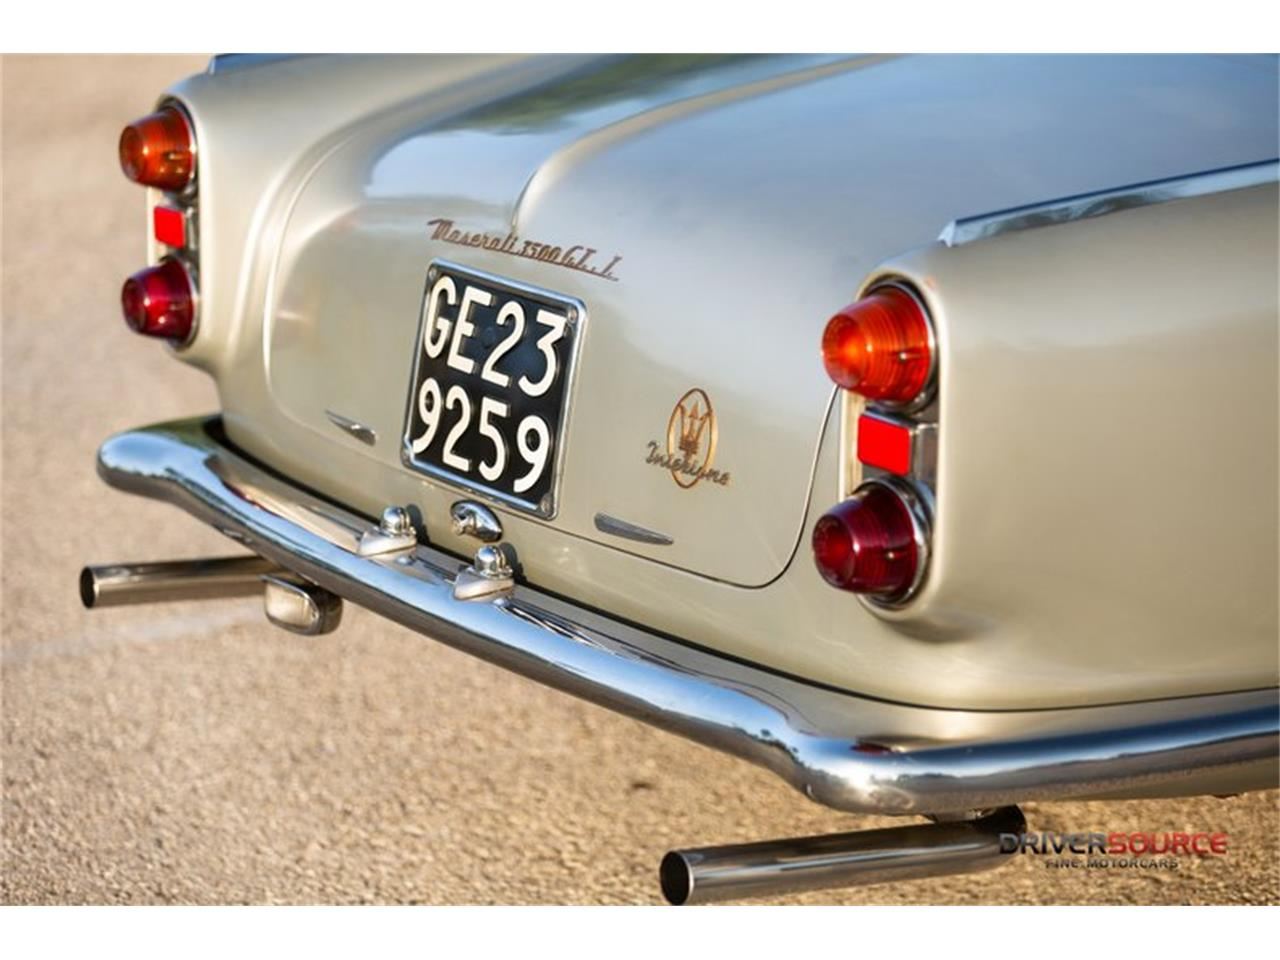 Large Picture of Classic '62 3500 - $278,500.00 Offered by Driversource - OCR7